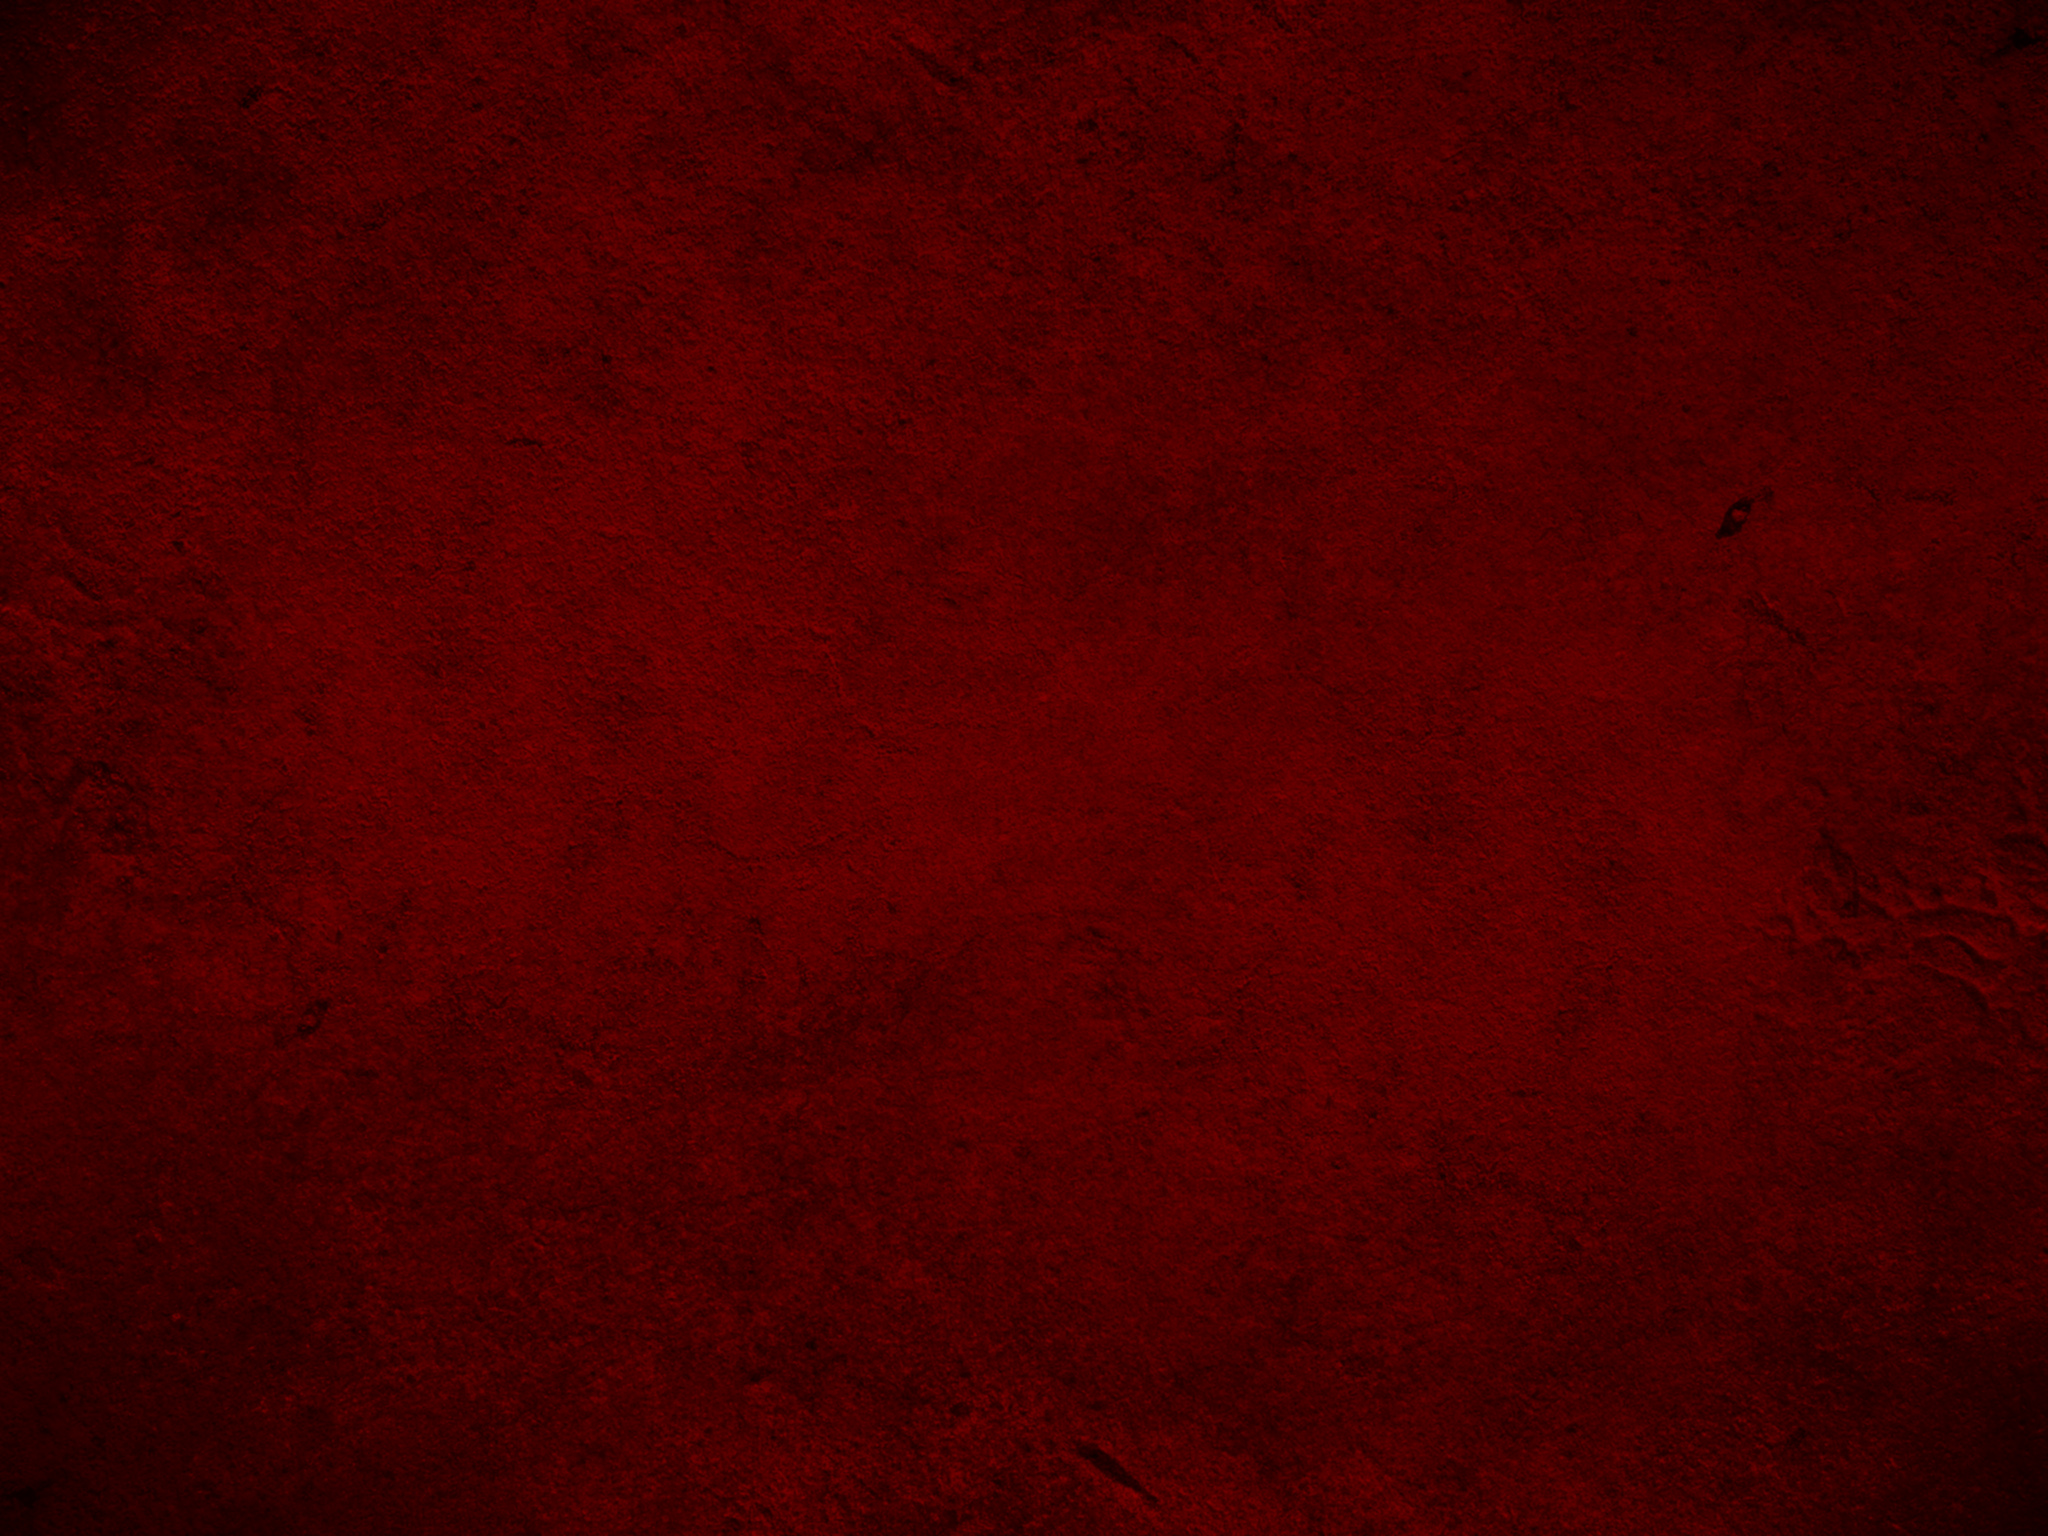 red textured backgrounds 2048x1536